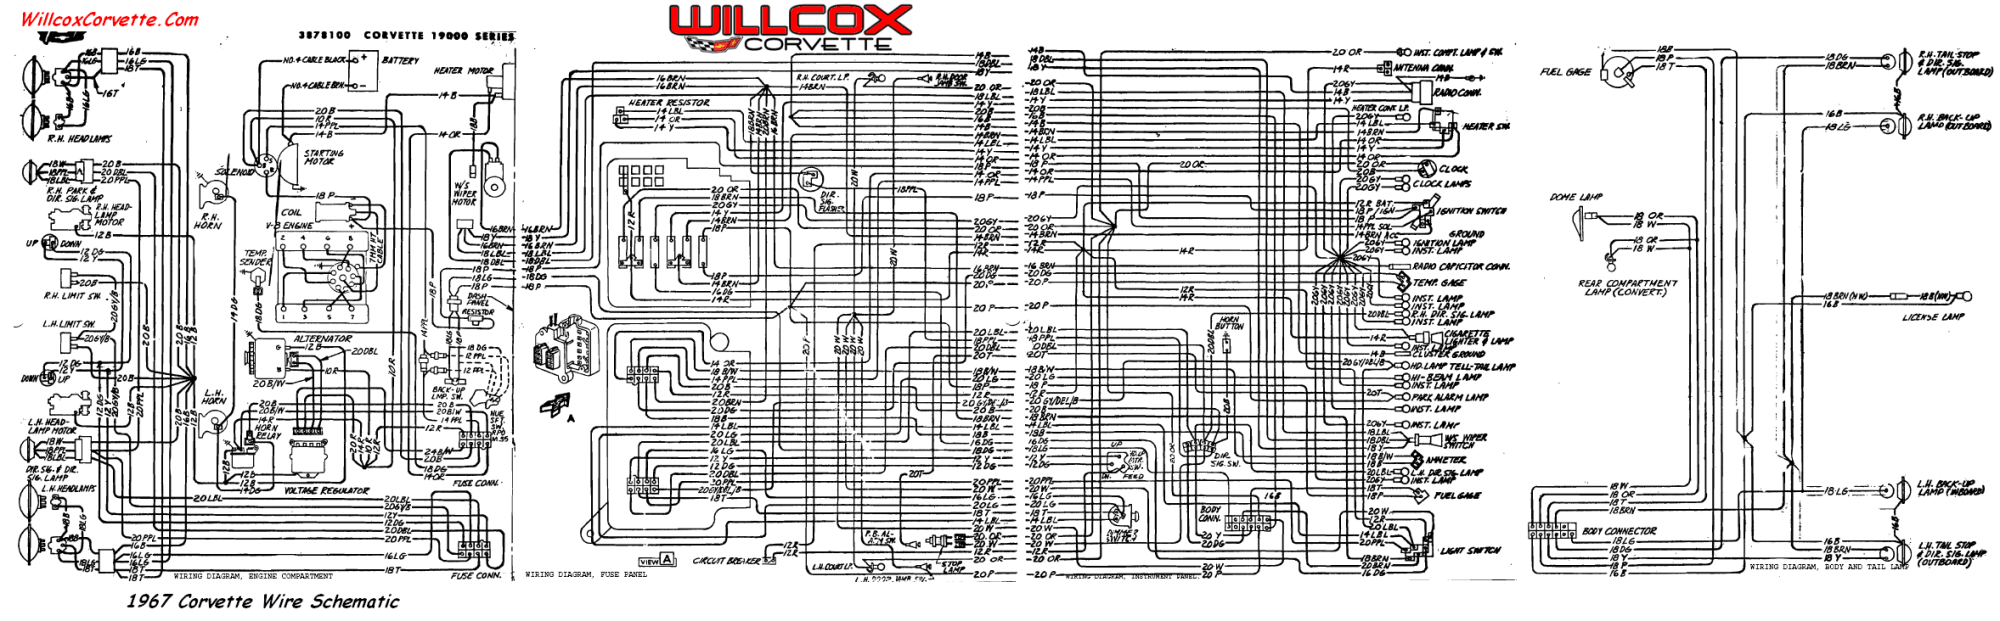 hight resolution of 1964 corvette fuse box wiring wiring diagram data val 64 corvette fuse box